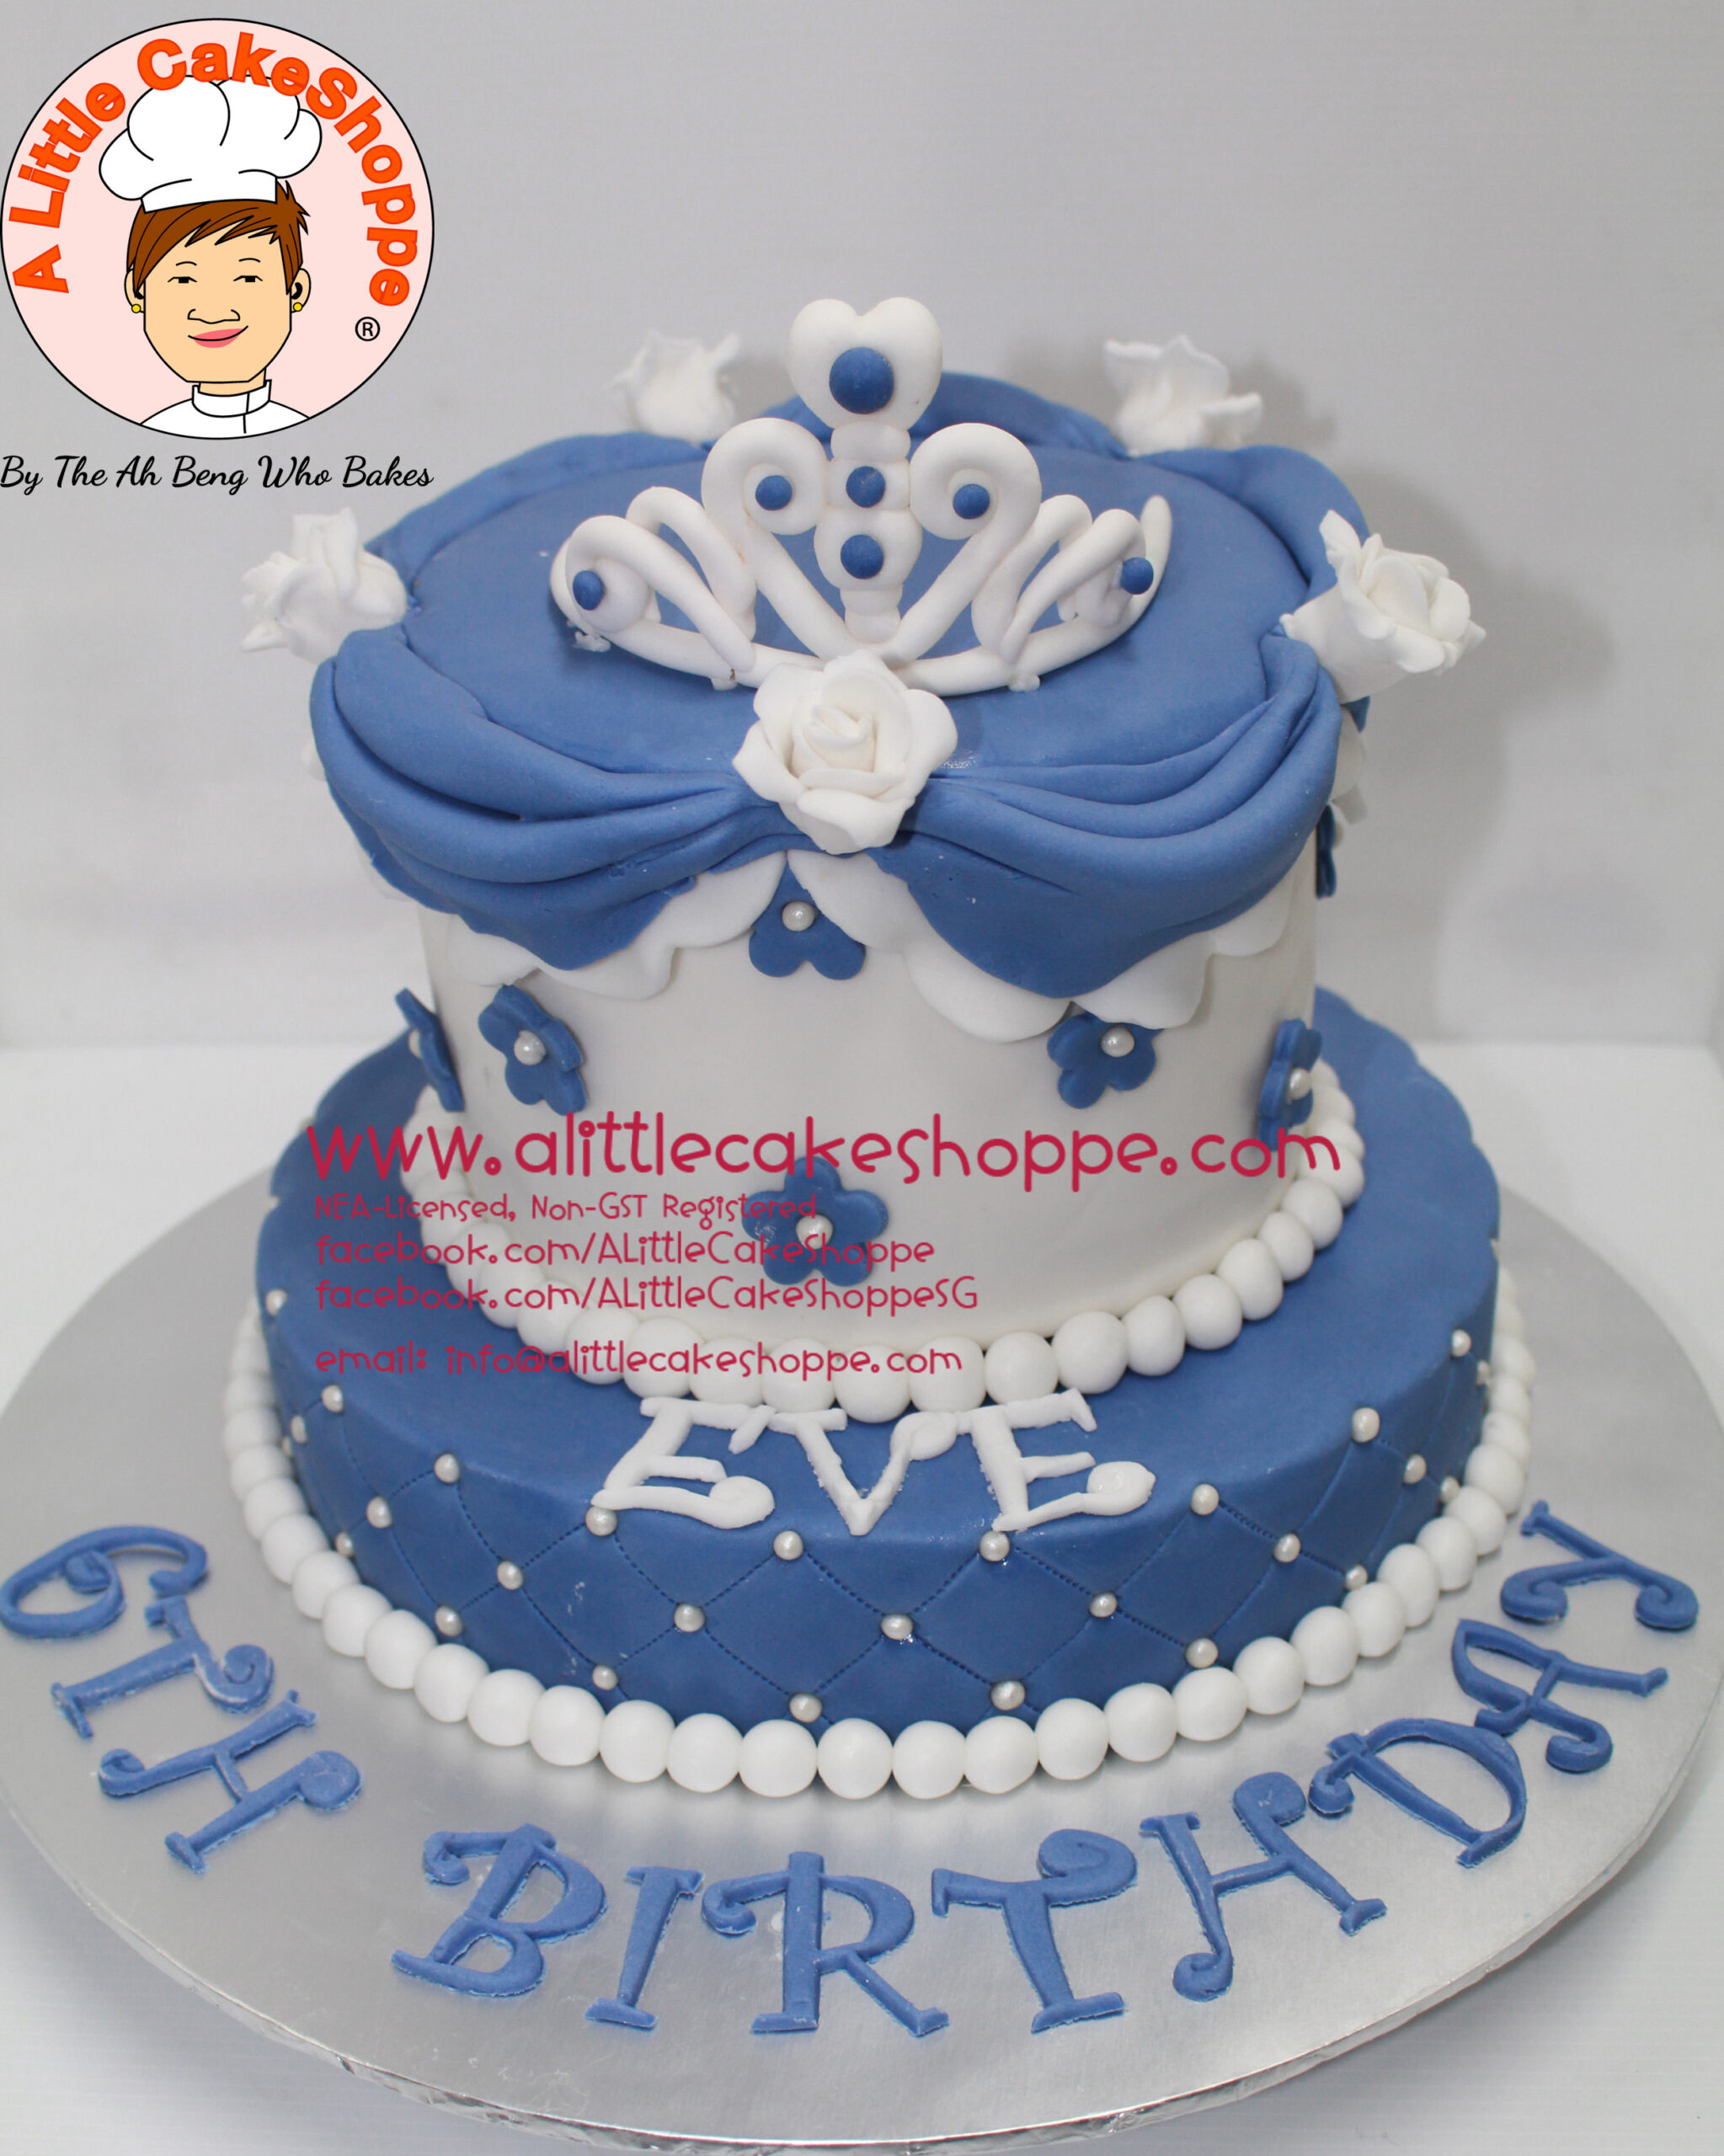 Best Customised Cake Shop Singapore custom cake 2D 3D birthday cake cupcakes desserts wedding corporate events anniversary 1st birthday 21st birthday fondant fresh cream buttercream cakes alittlecakeshoppe a little cake shoppe compliments review singapore bakers SG cake shop cakeshop ah beng who bakes princess sofia